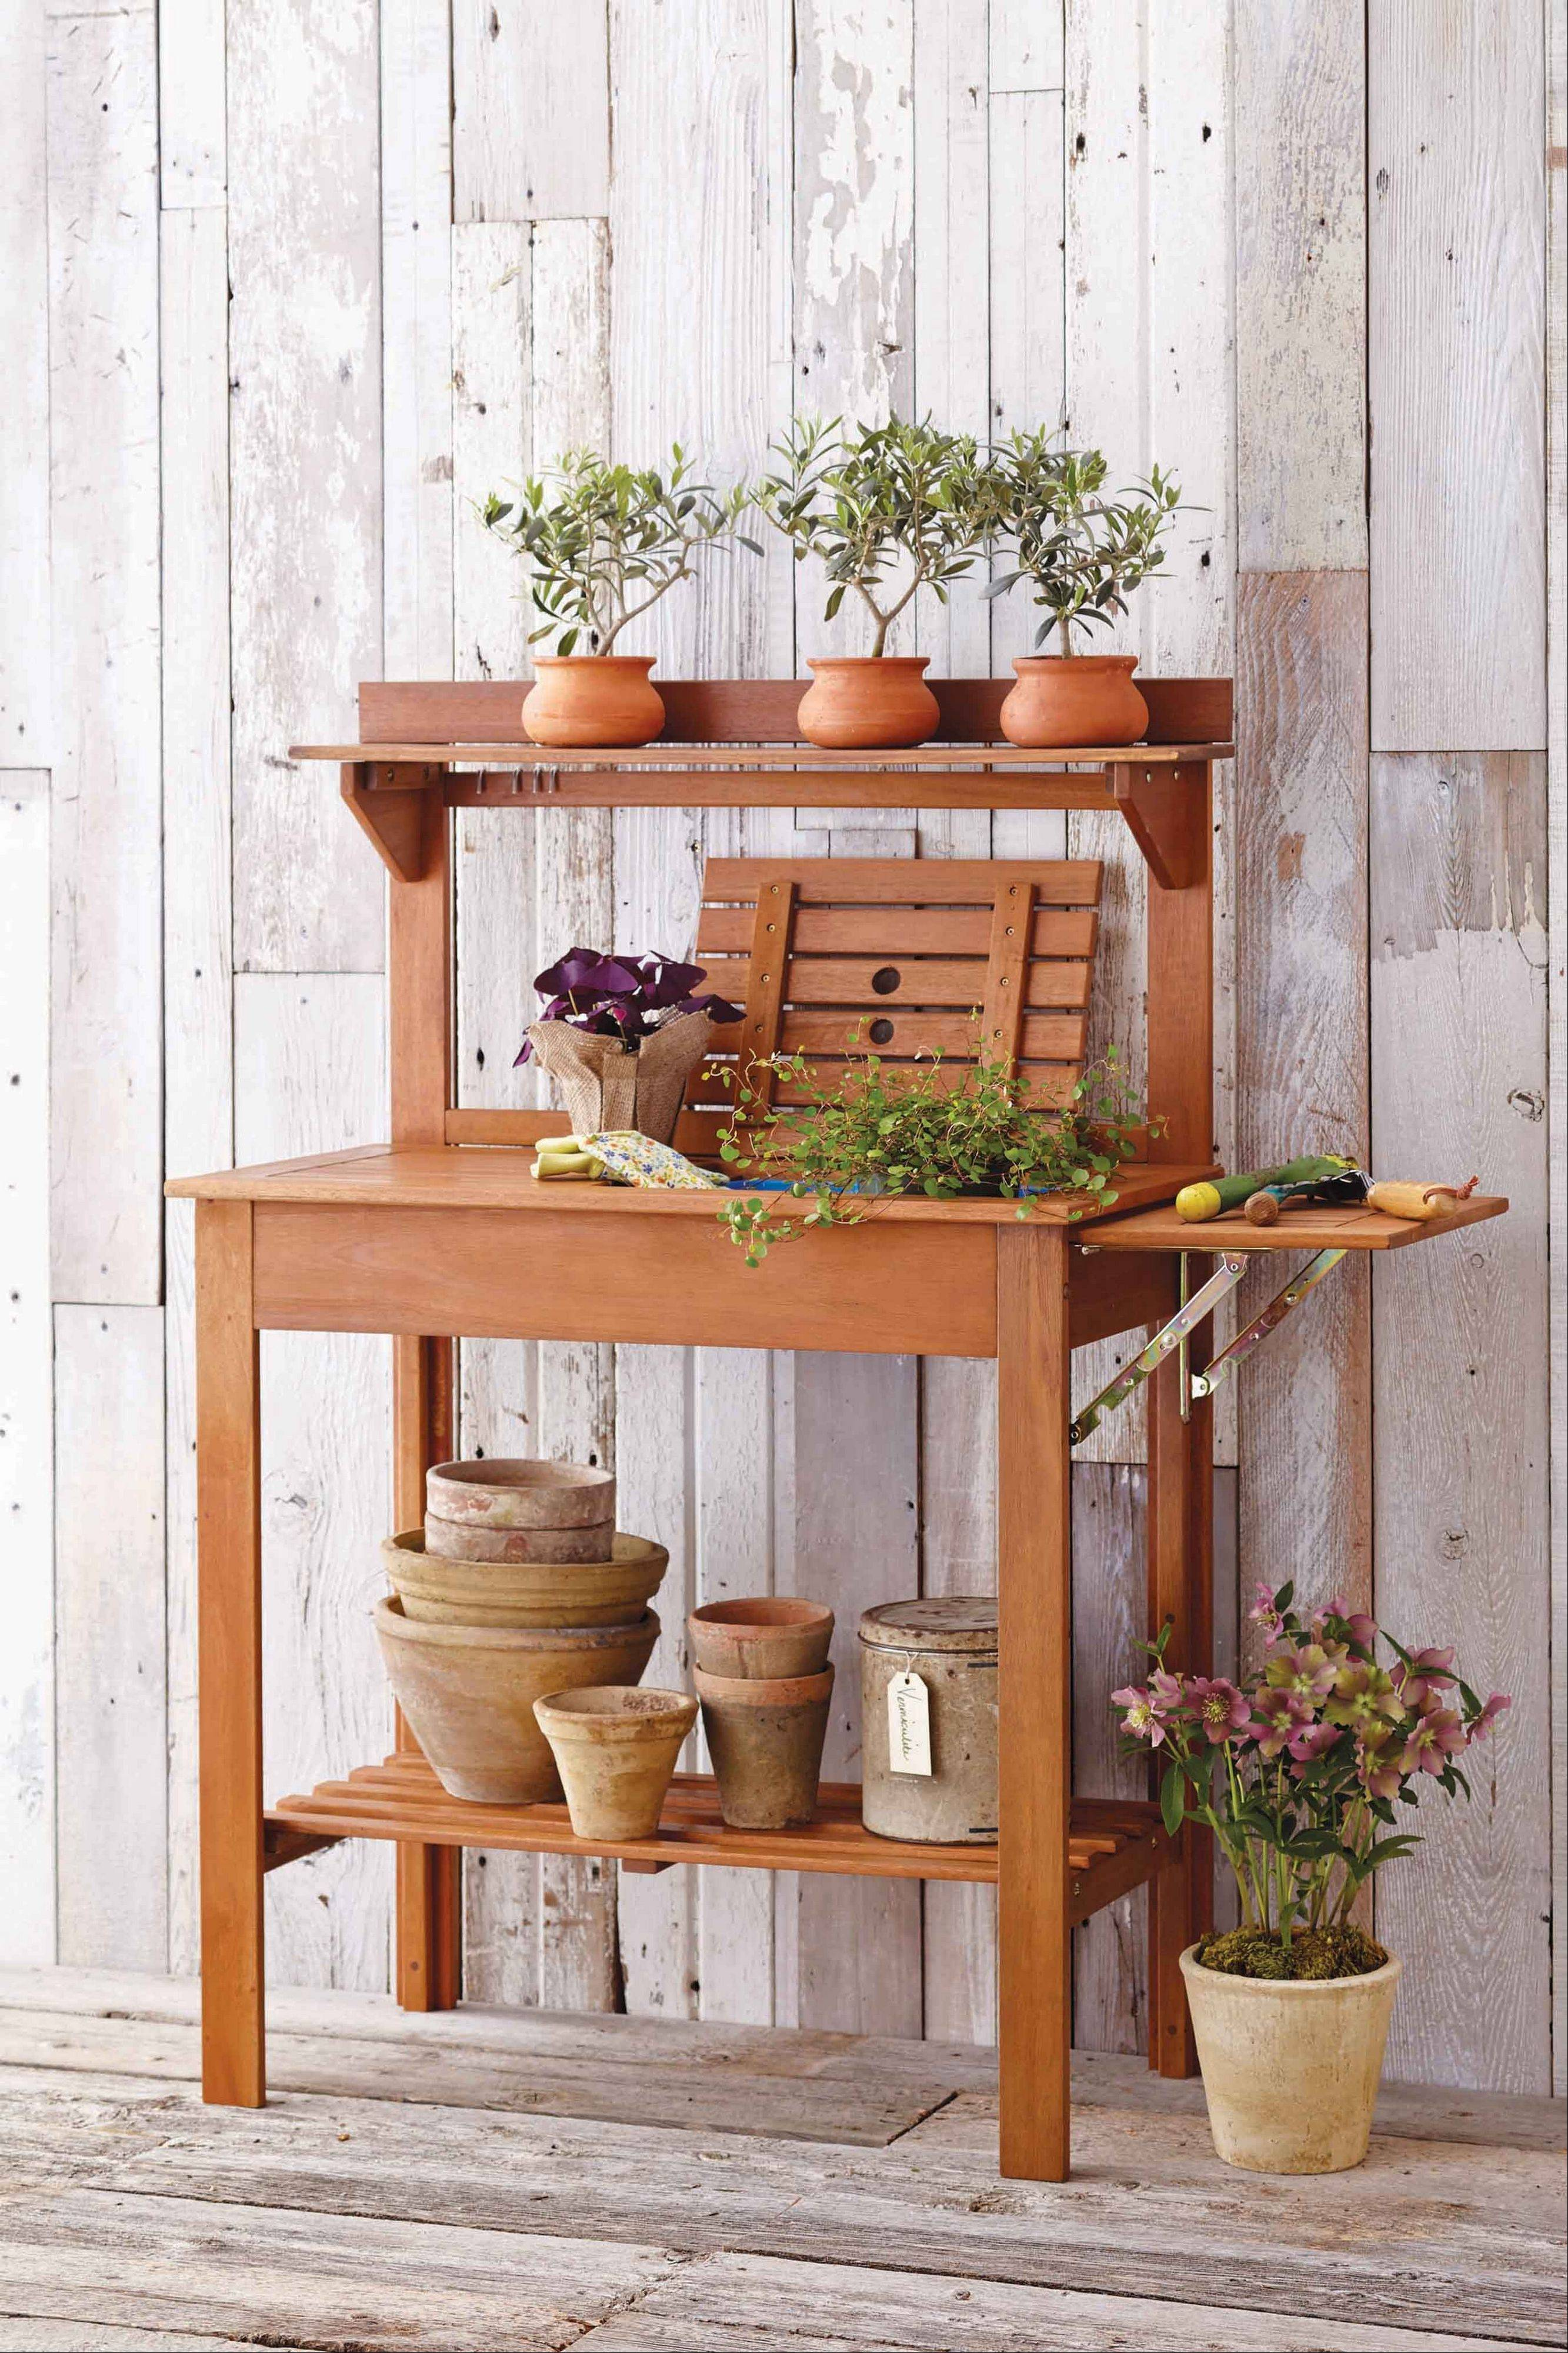 Small wooden potting benches help bring a garden to those with small outdoor space.